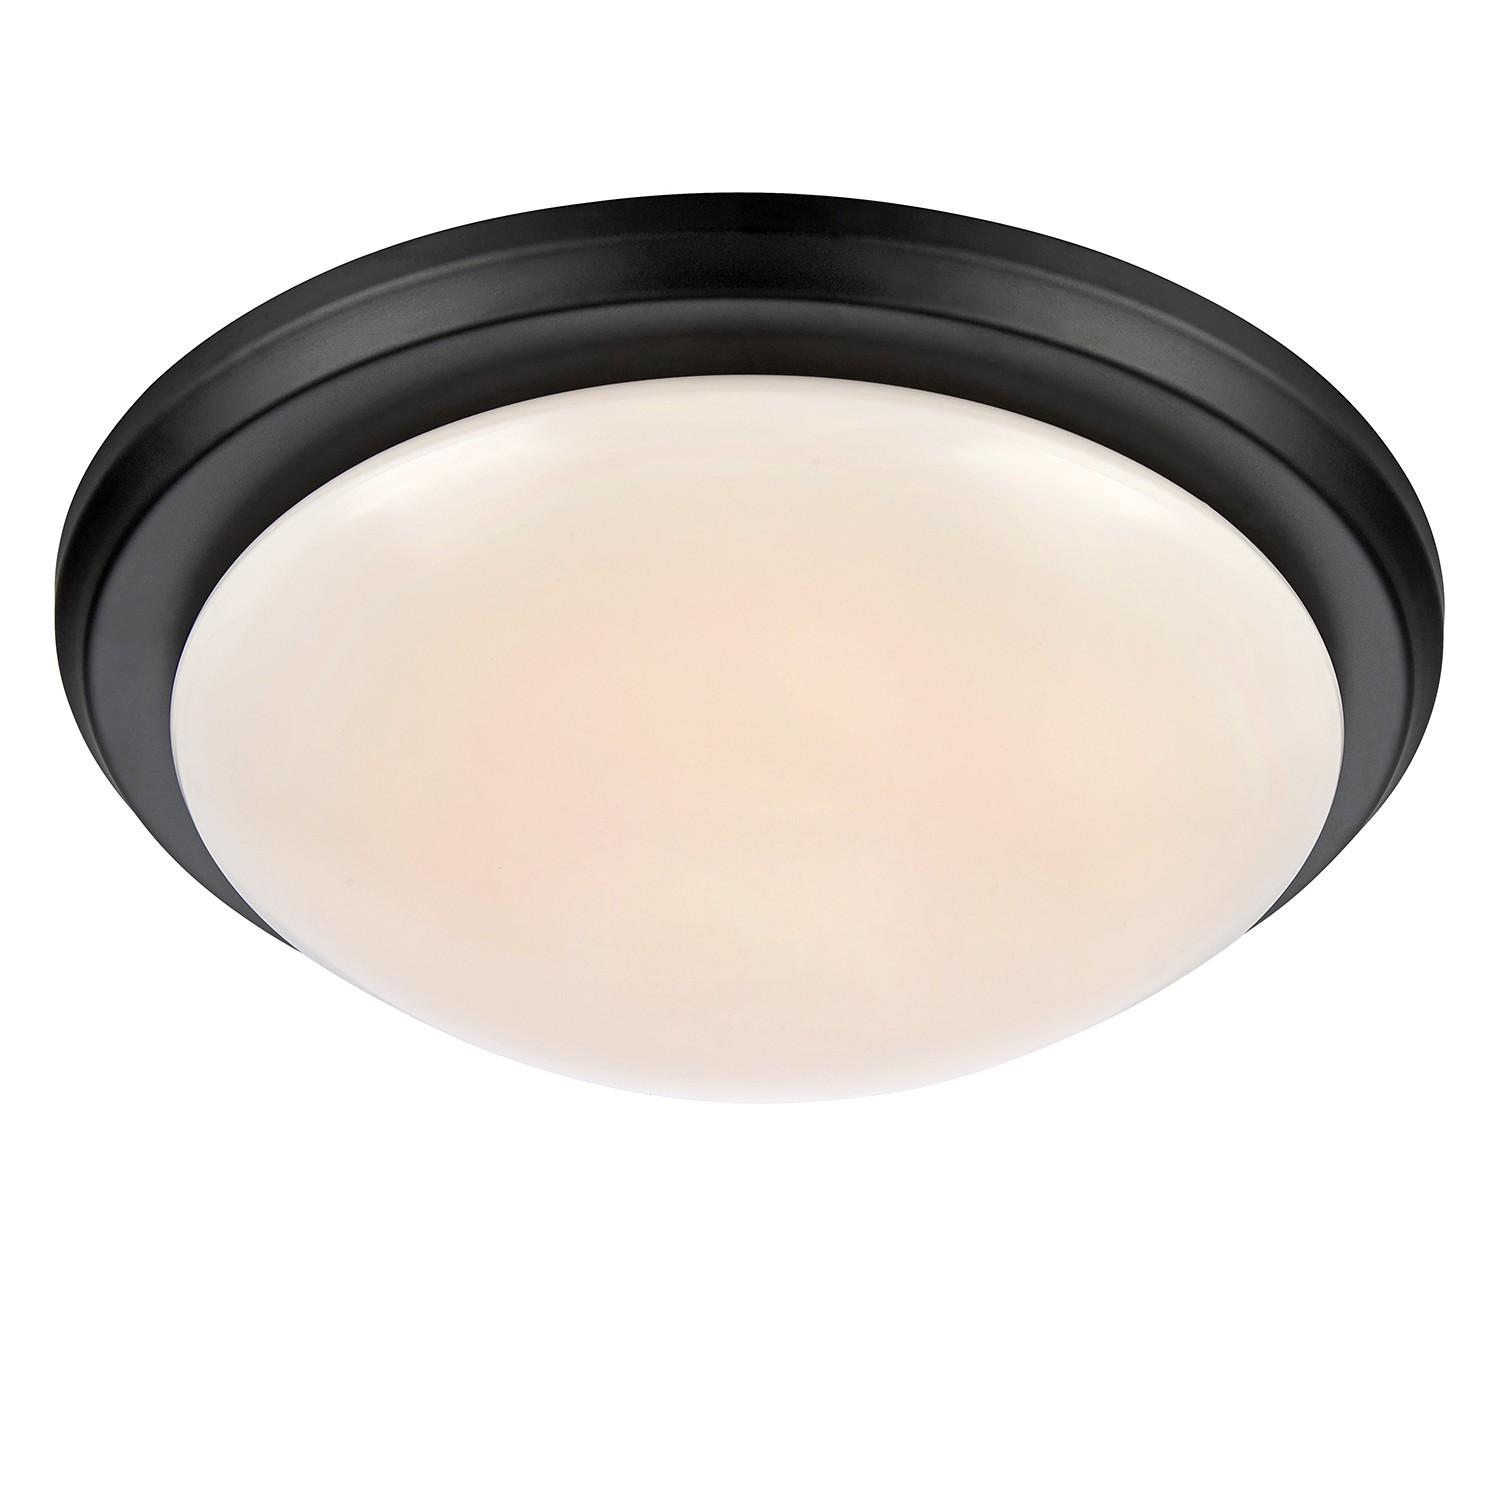 home24 LED-Deckenleuchte Rotor III